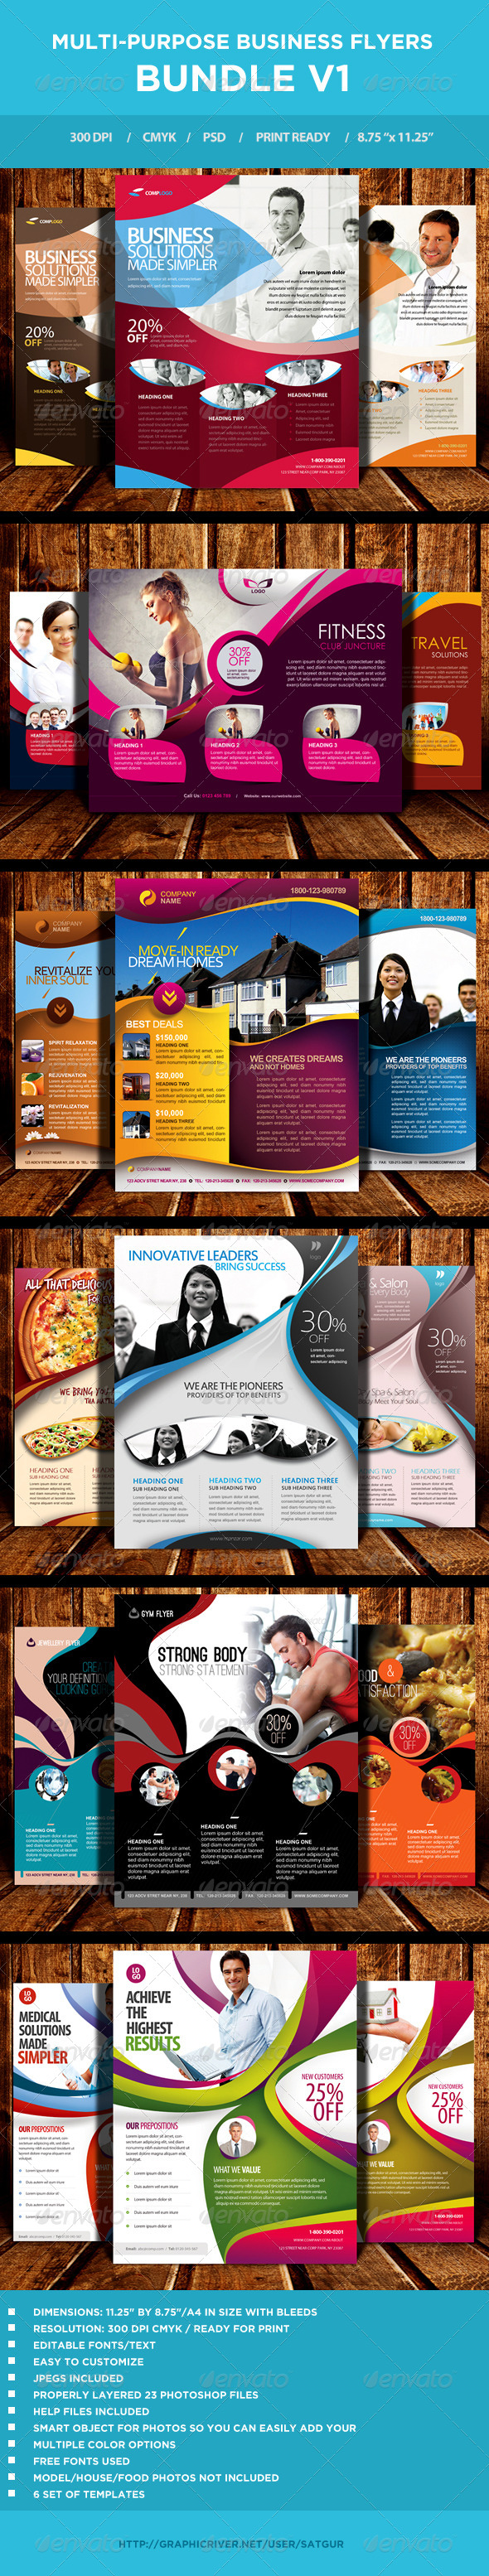 Multi-purpose Business Flyers Bundle V1